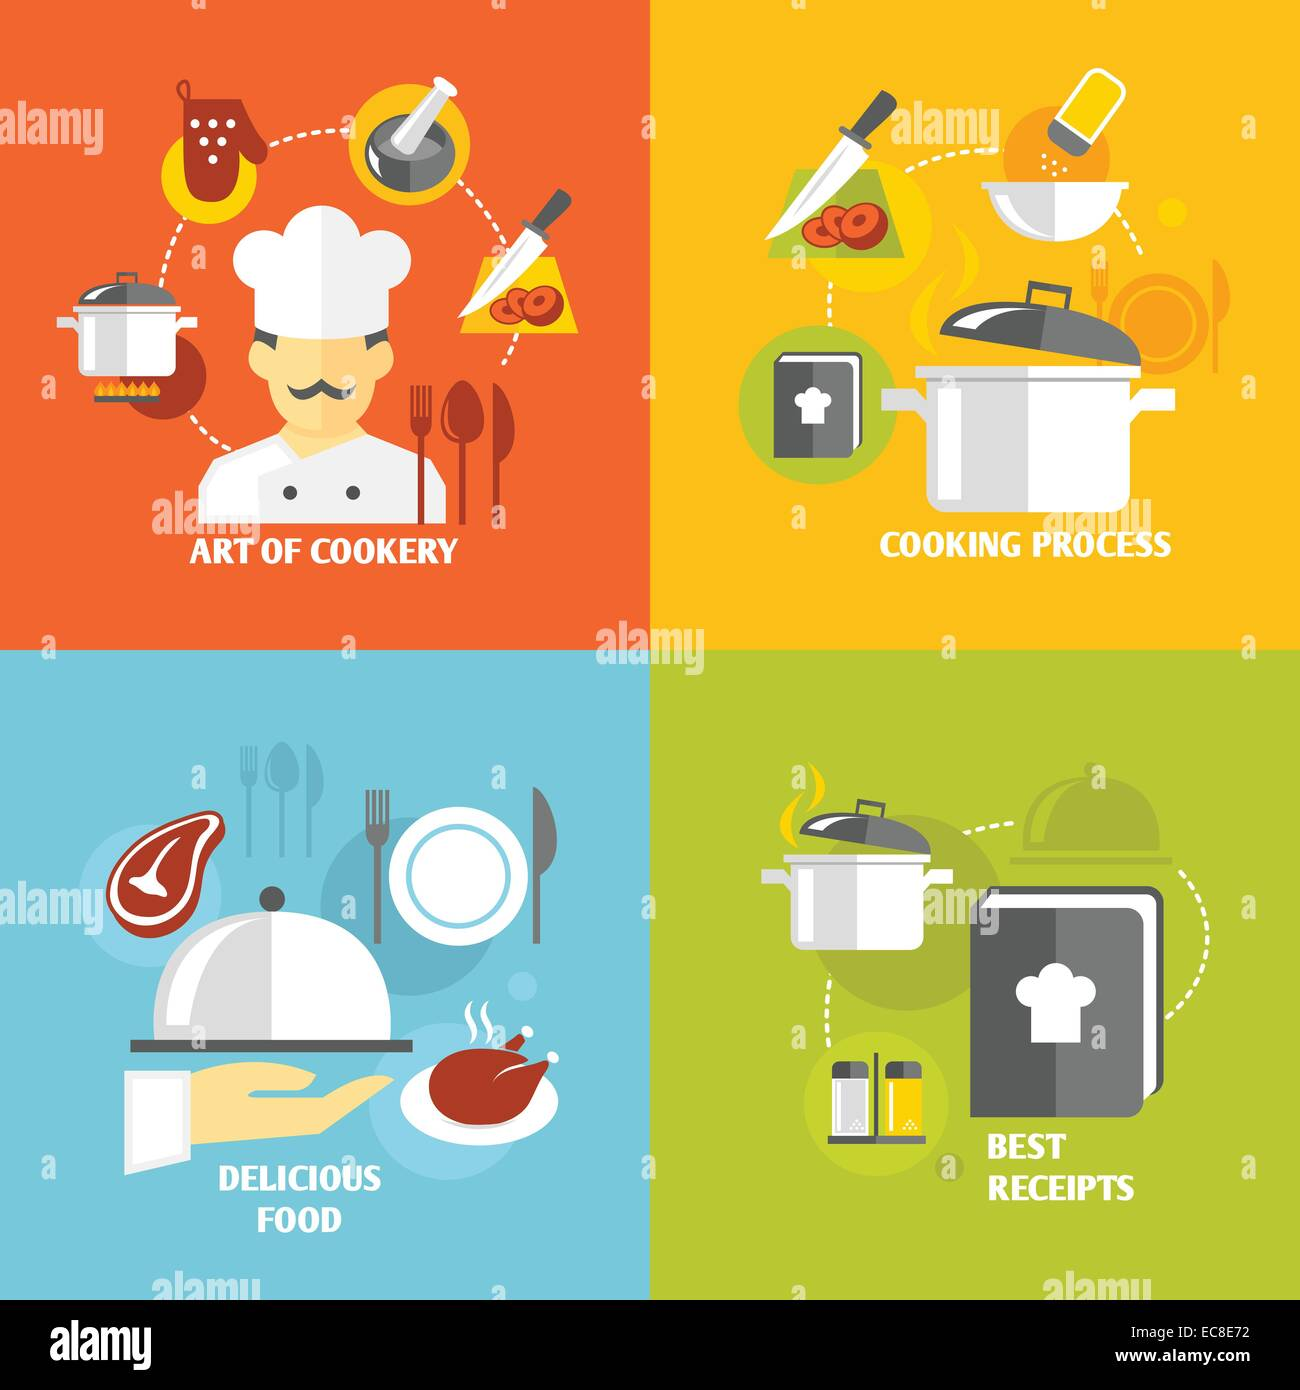 Art of cookery cooking process delicious food best recipes